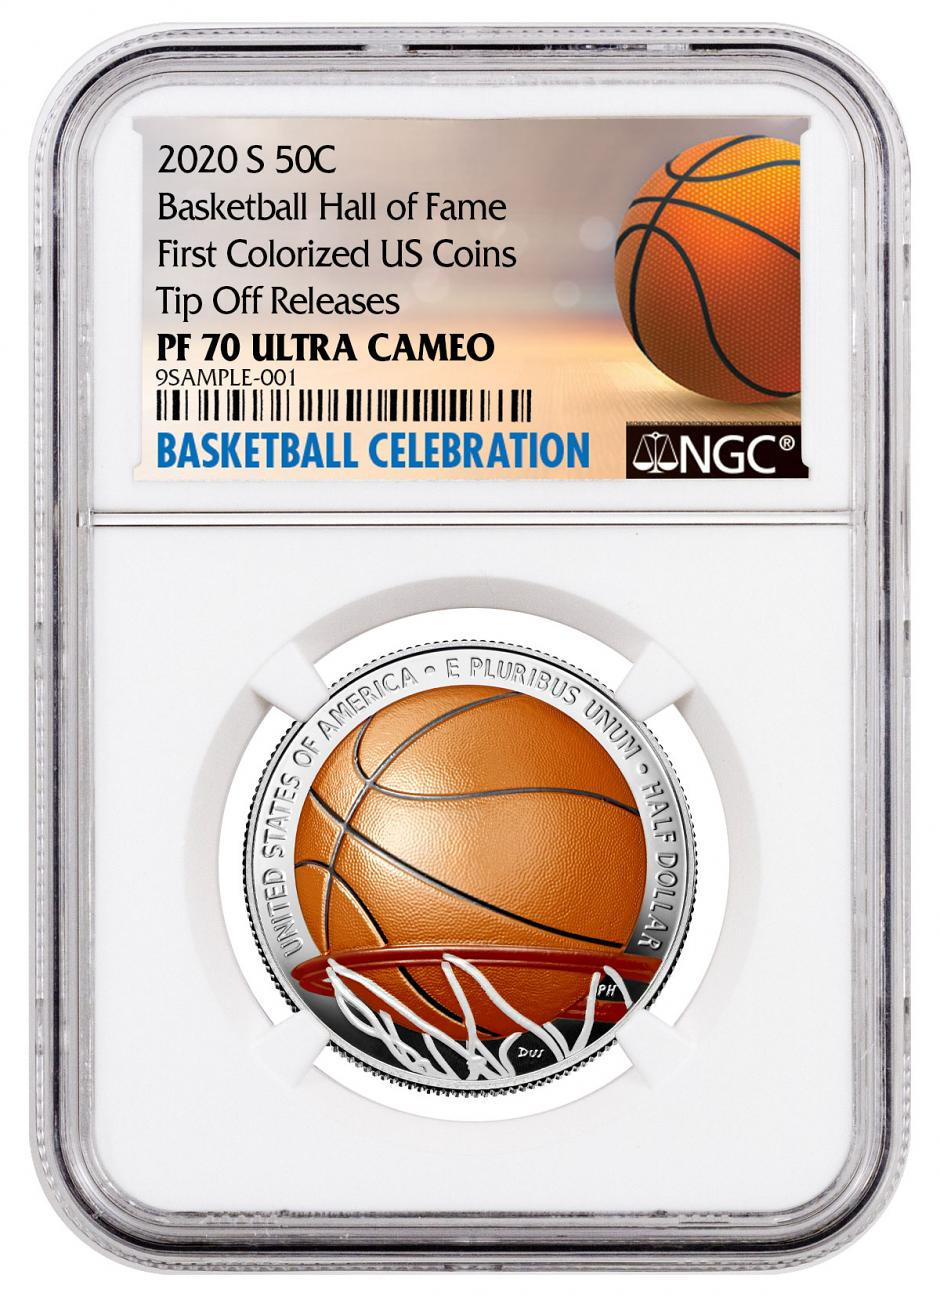 2020-S Basketball Hall of Fame Commemorative Clad Half Dollar Colorized Proof Coin NGC PF70 UC Tip Off Releases Basketball Celebration Label